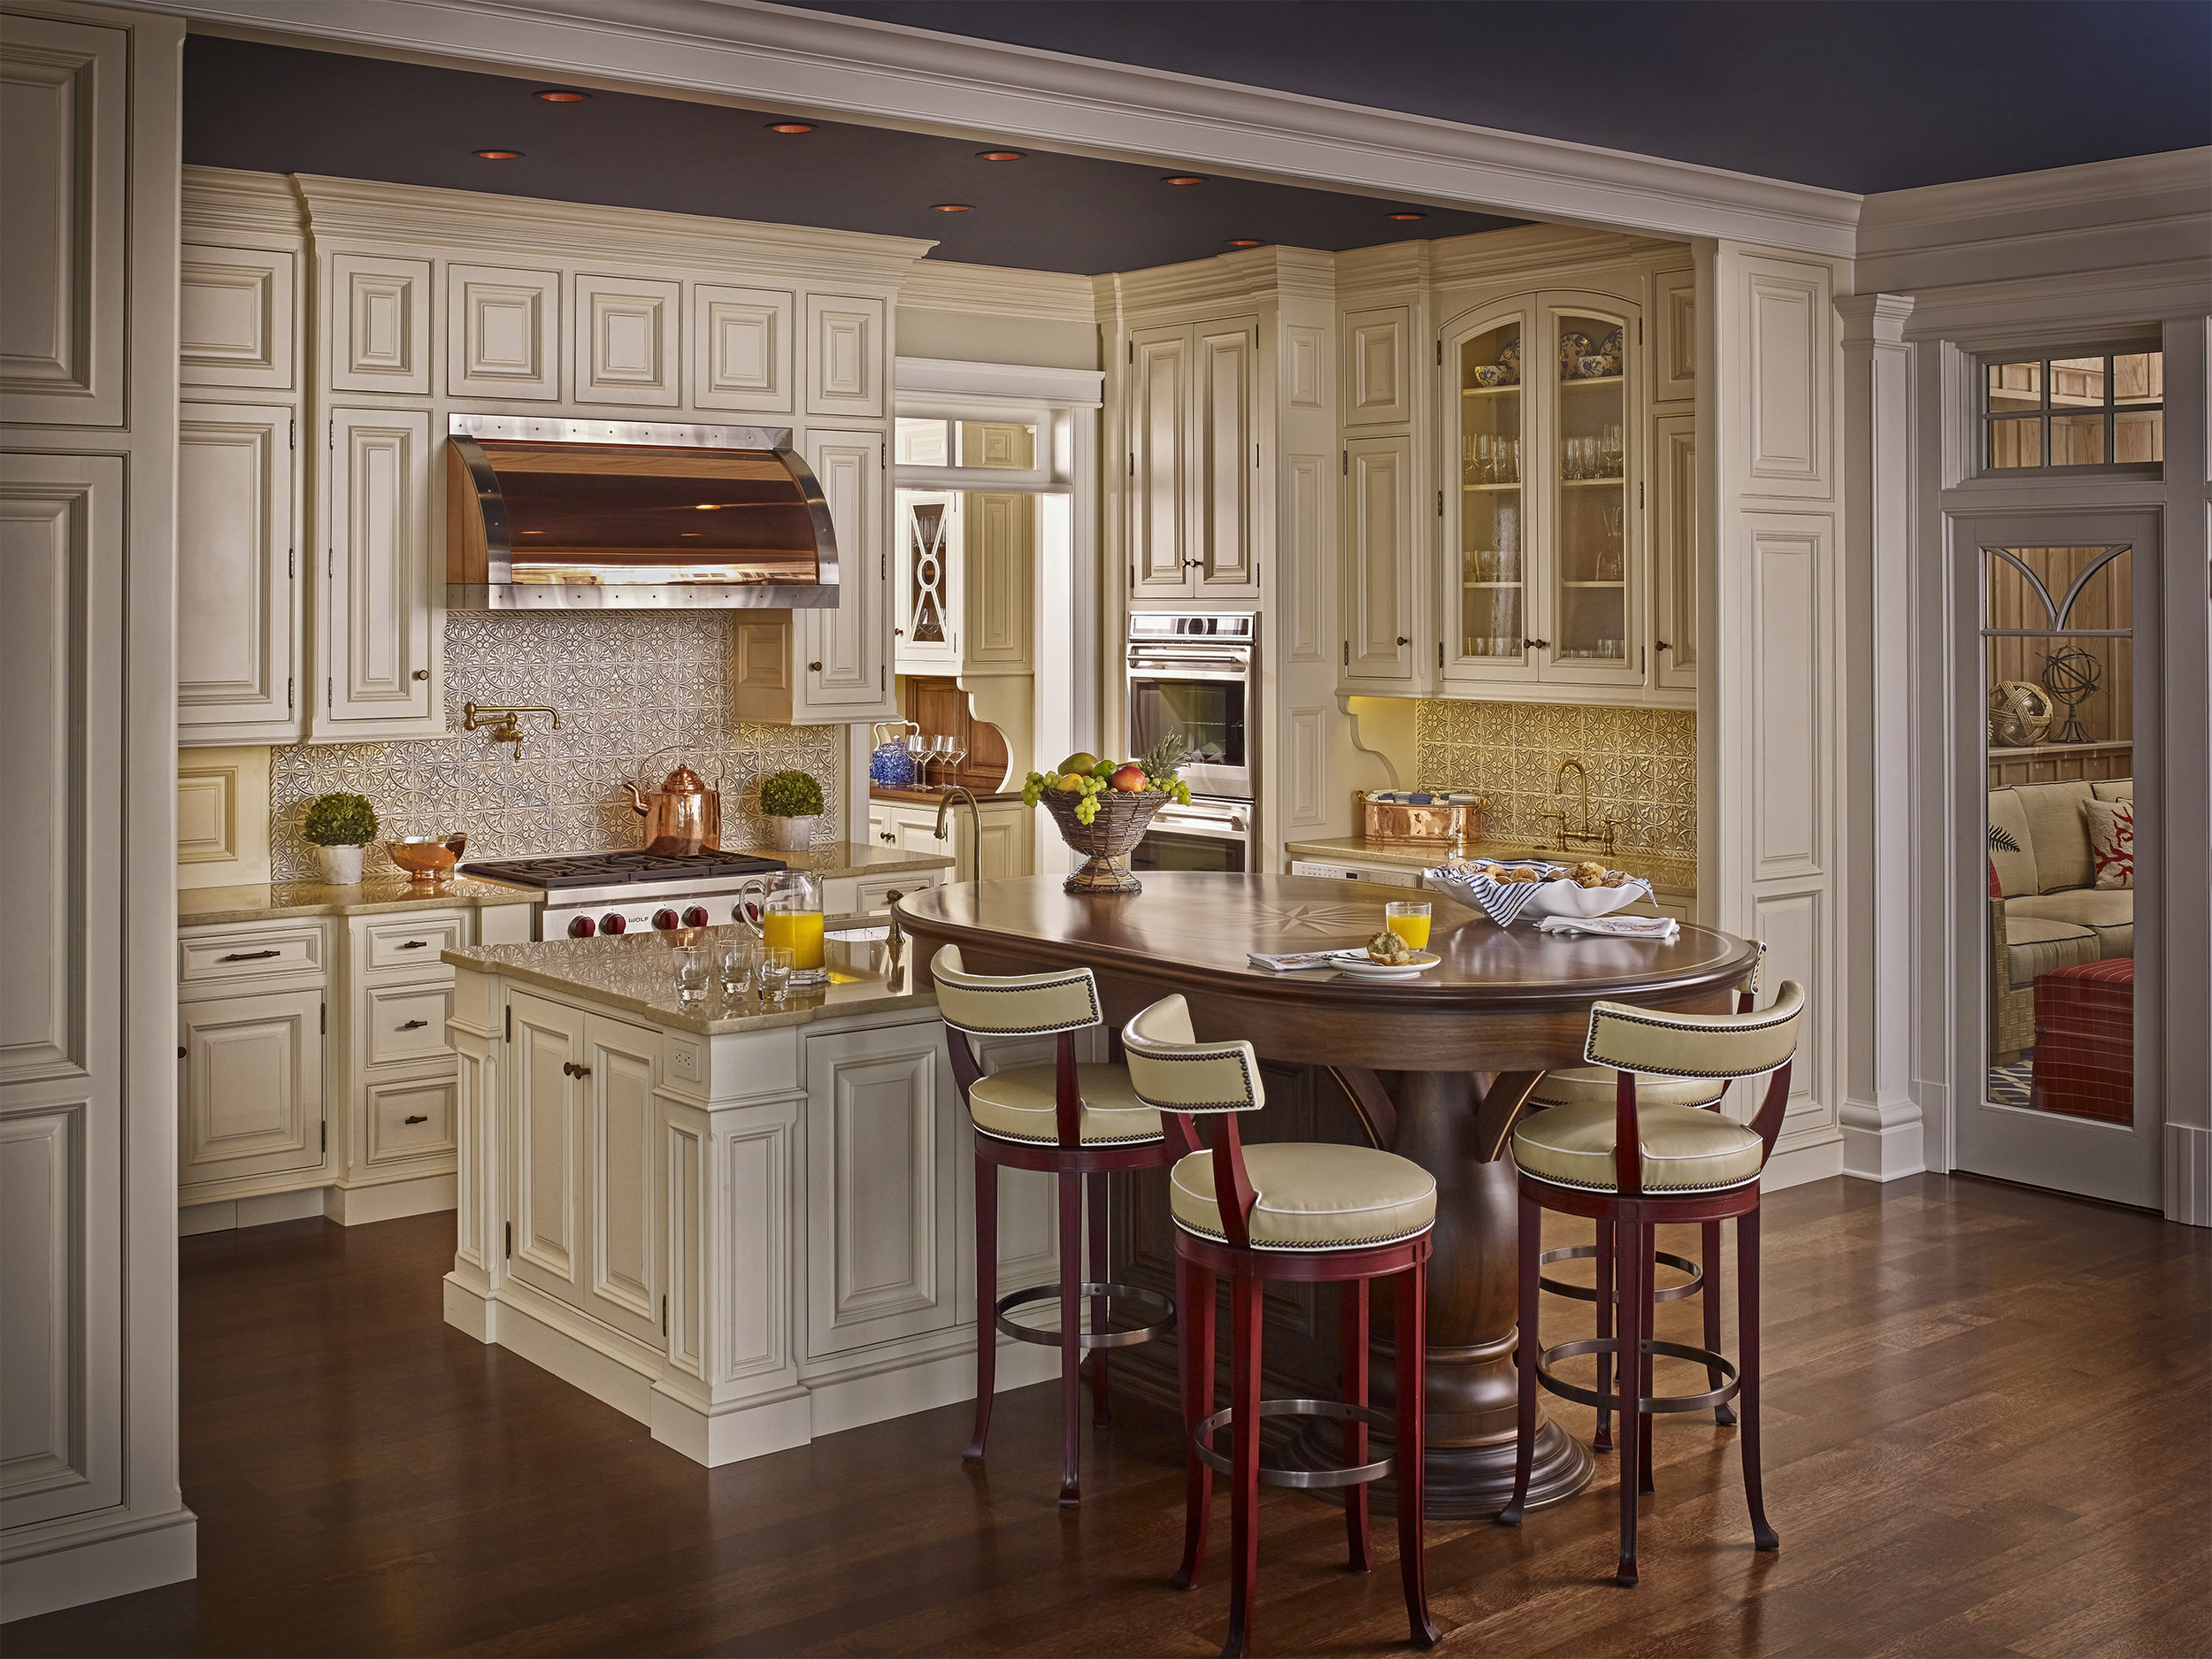 Kitchen-392.jpg